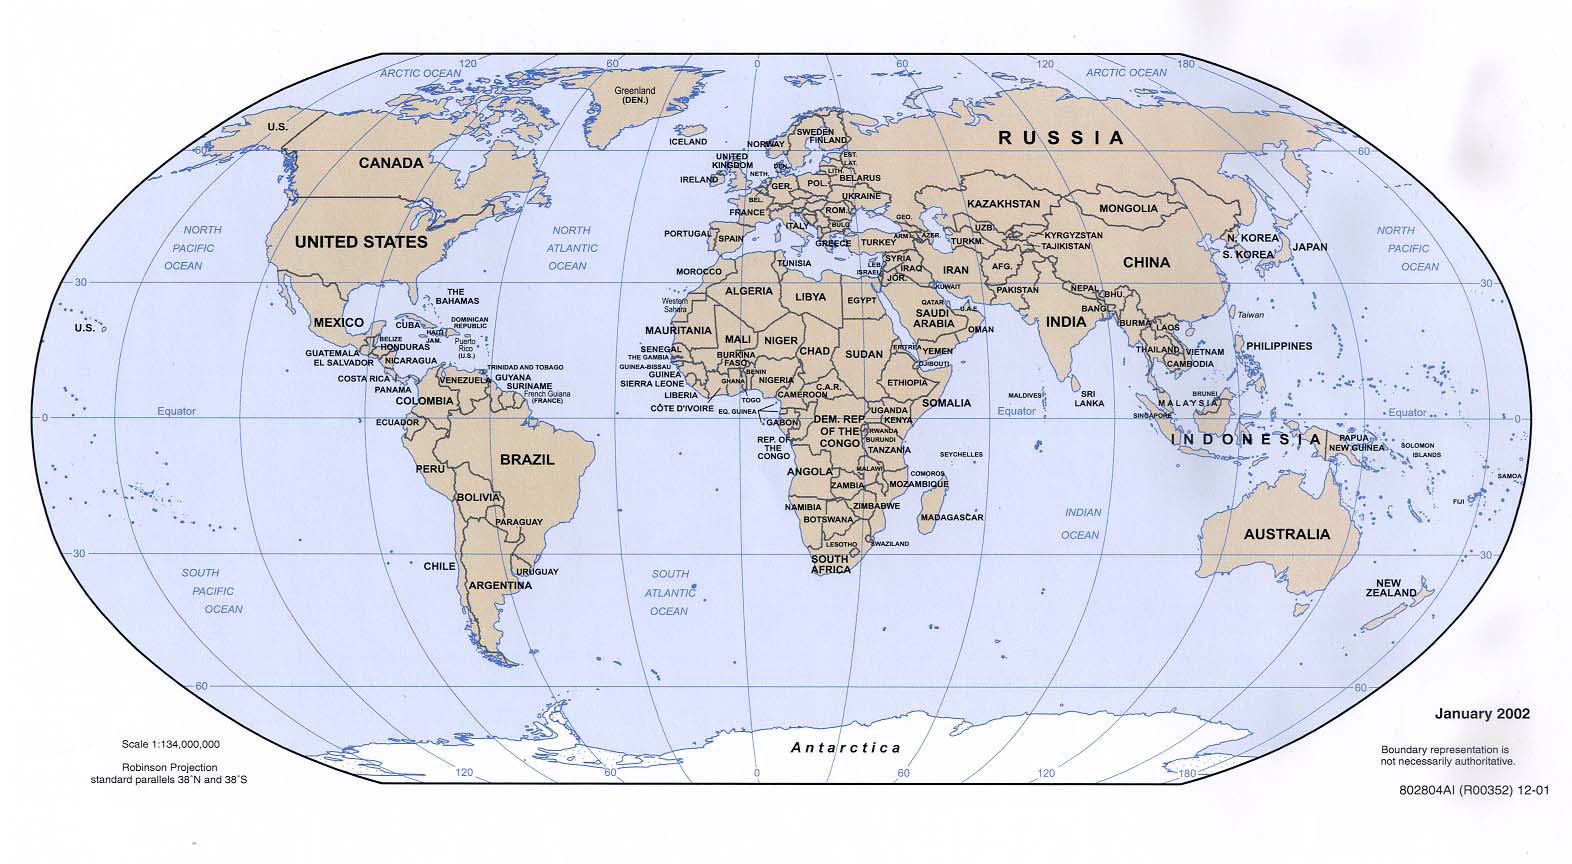 Maps Of The World World Maps Political Maps Geographical Maps - Detailed world map